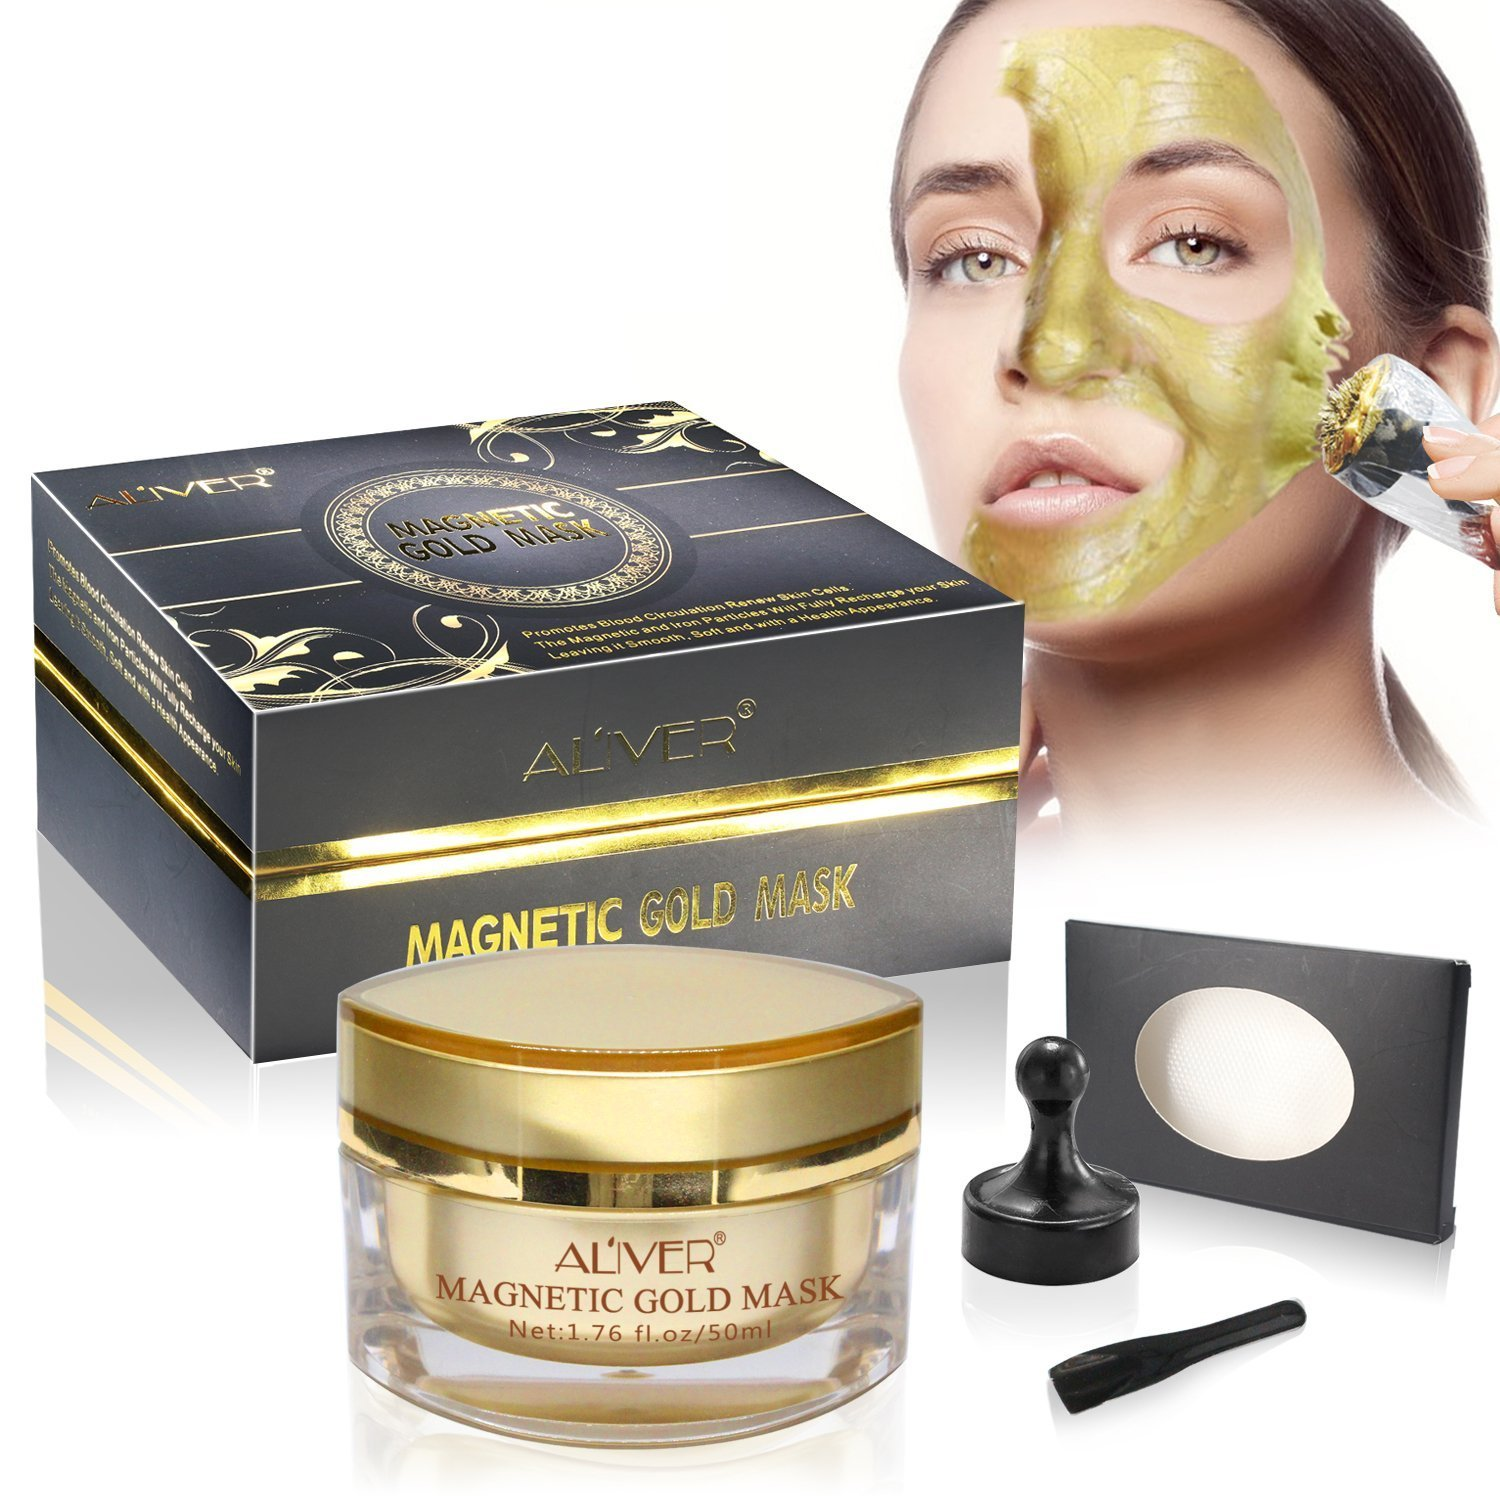 ALIVER Gold Mineral Magnetic Sea Mud Face Mask Deep Skin Cleanser,Pore Reducer & Help Clean Acne,Blackhead & Oil Skin (50 ML/1.76 fl. oz)  YILAIMEI